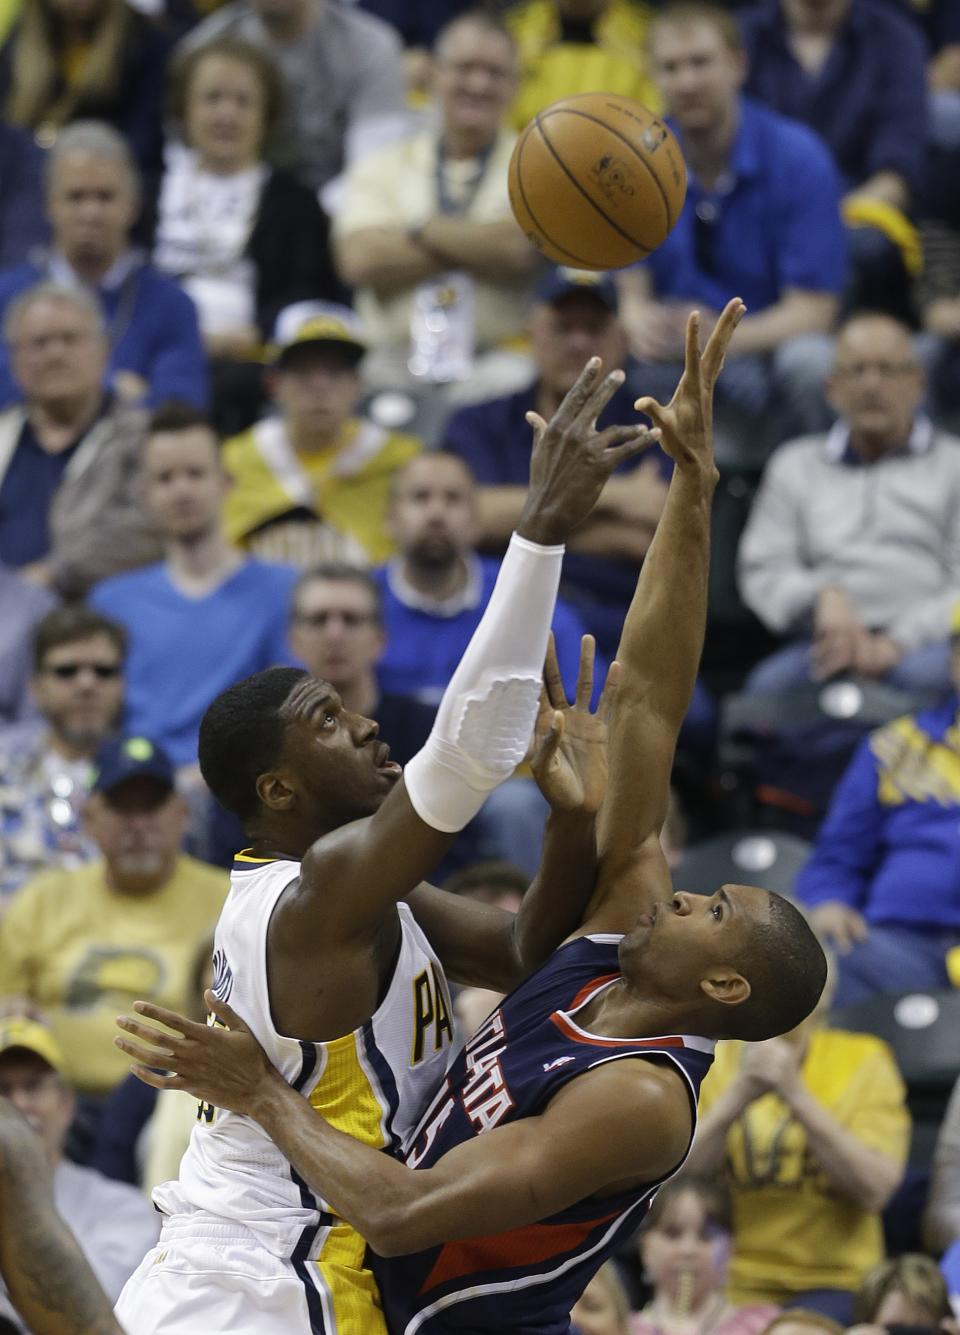 Indiana Pacers' Roy Hibbert, lefts, shoots against Atlanta Hawks' Al Horford during the first half of Game 1 in the first round of the NBA basketball playoffs on Sunday, April 21, 2013, in Indianapolis. (AP Photo/Darron Cummings)